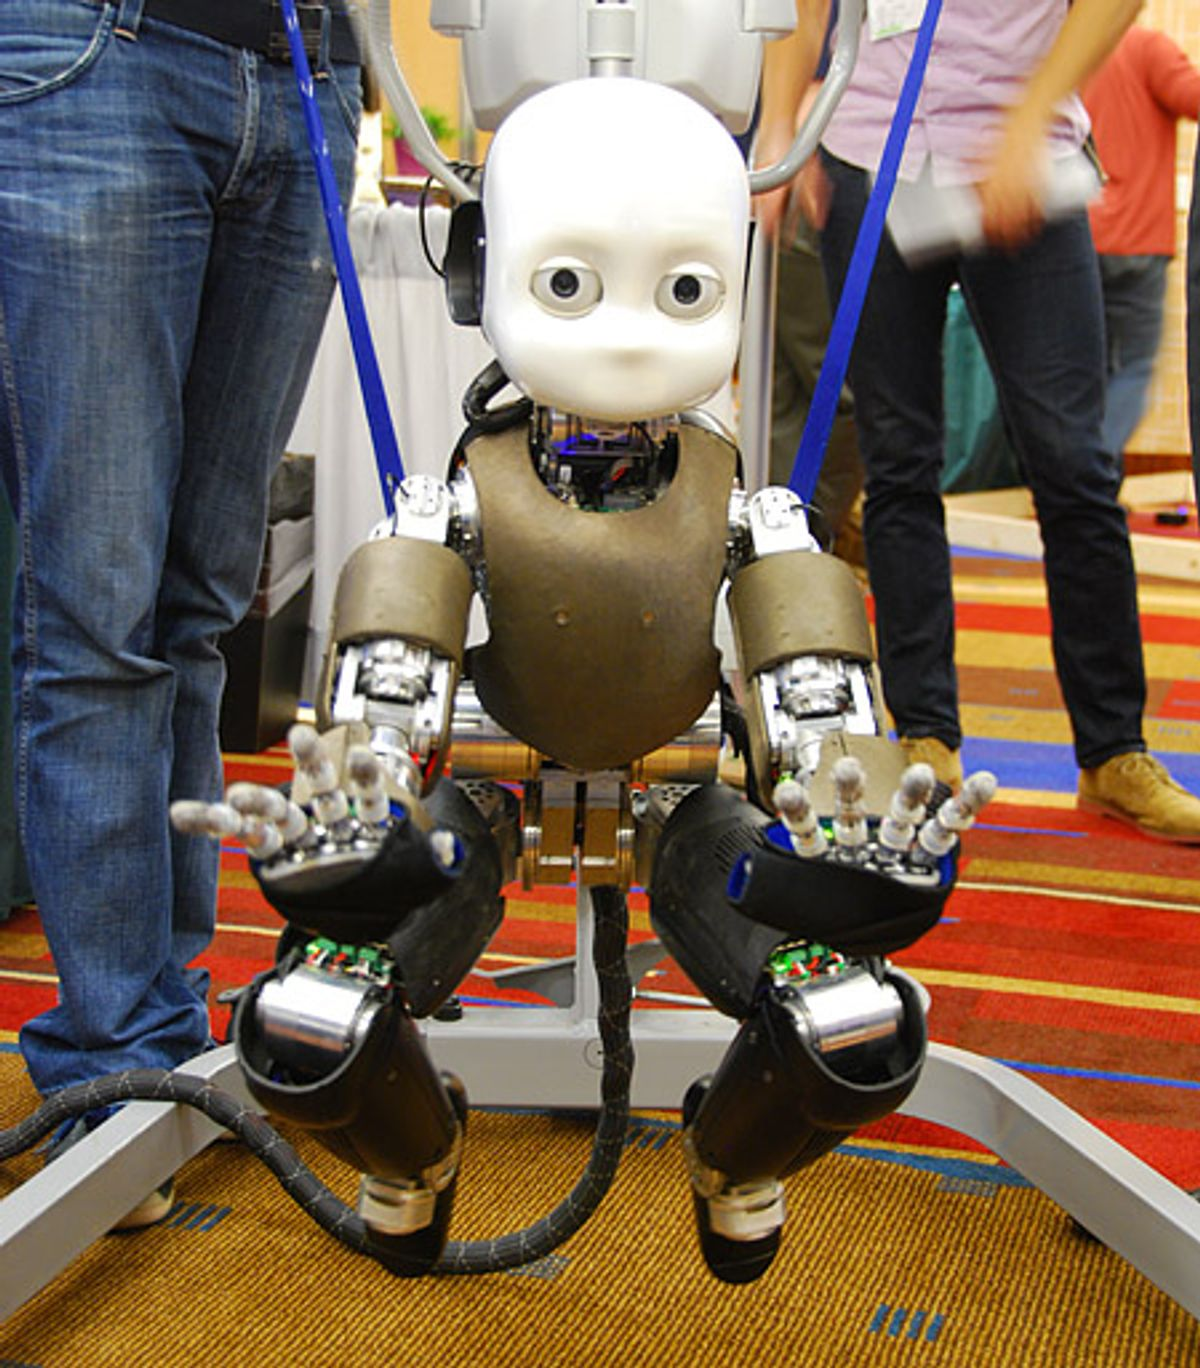 Crawling iCub Is the Robot Baby You Never Wanted